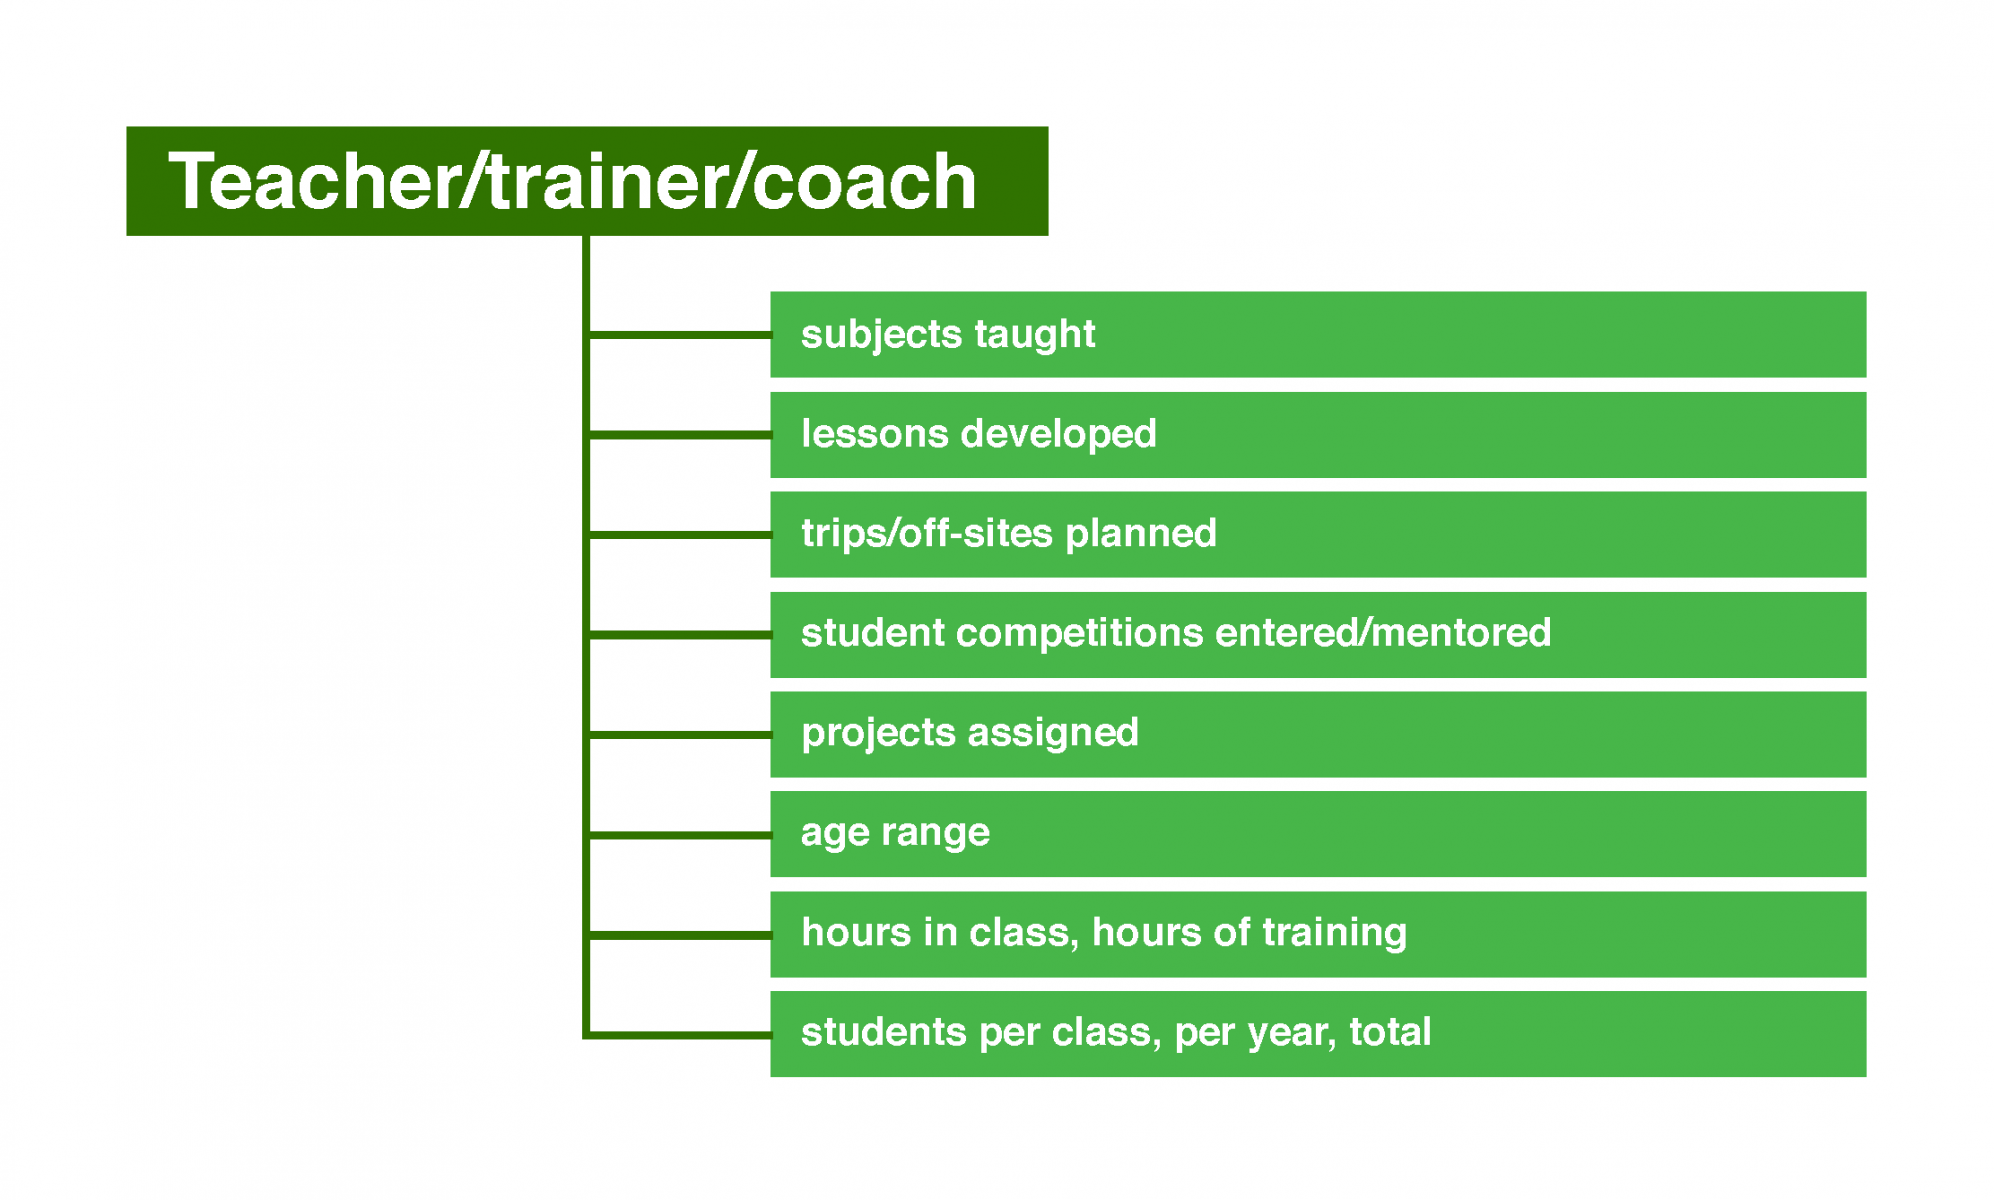 Potential numbers for teacher, trainer, coaches